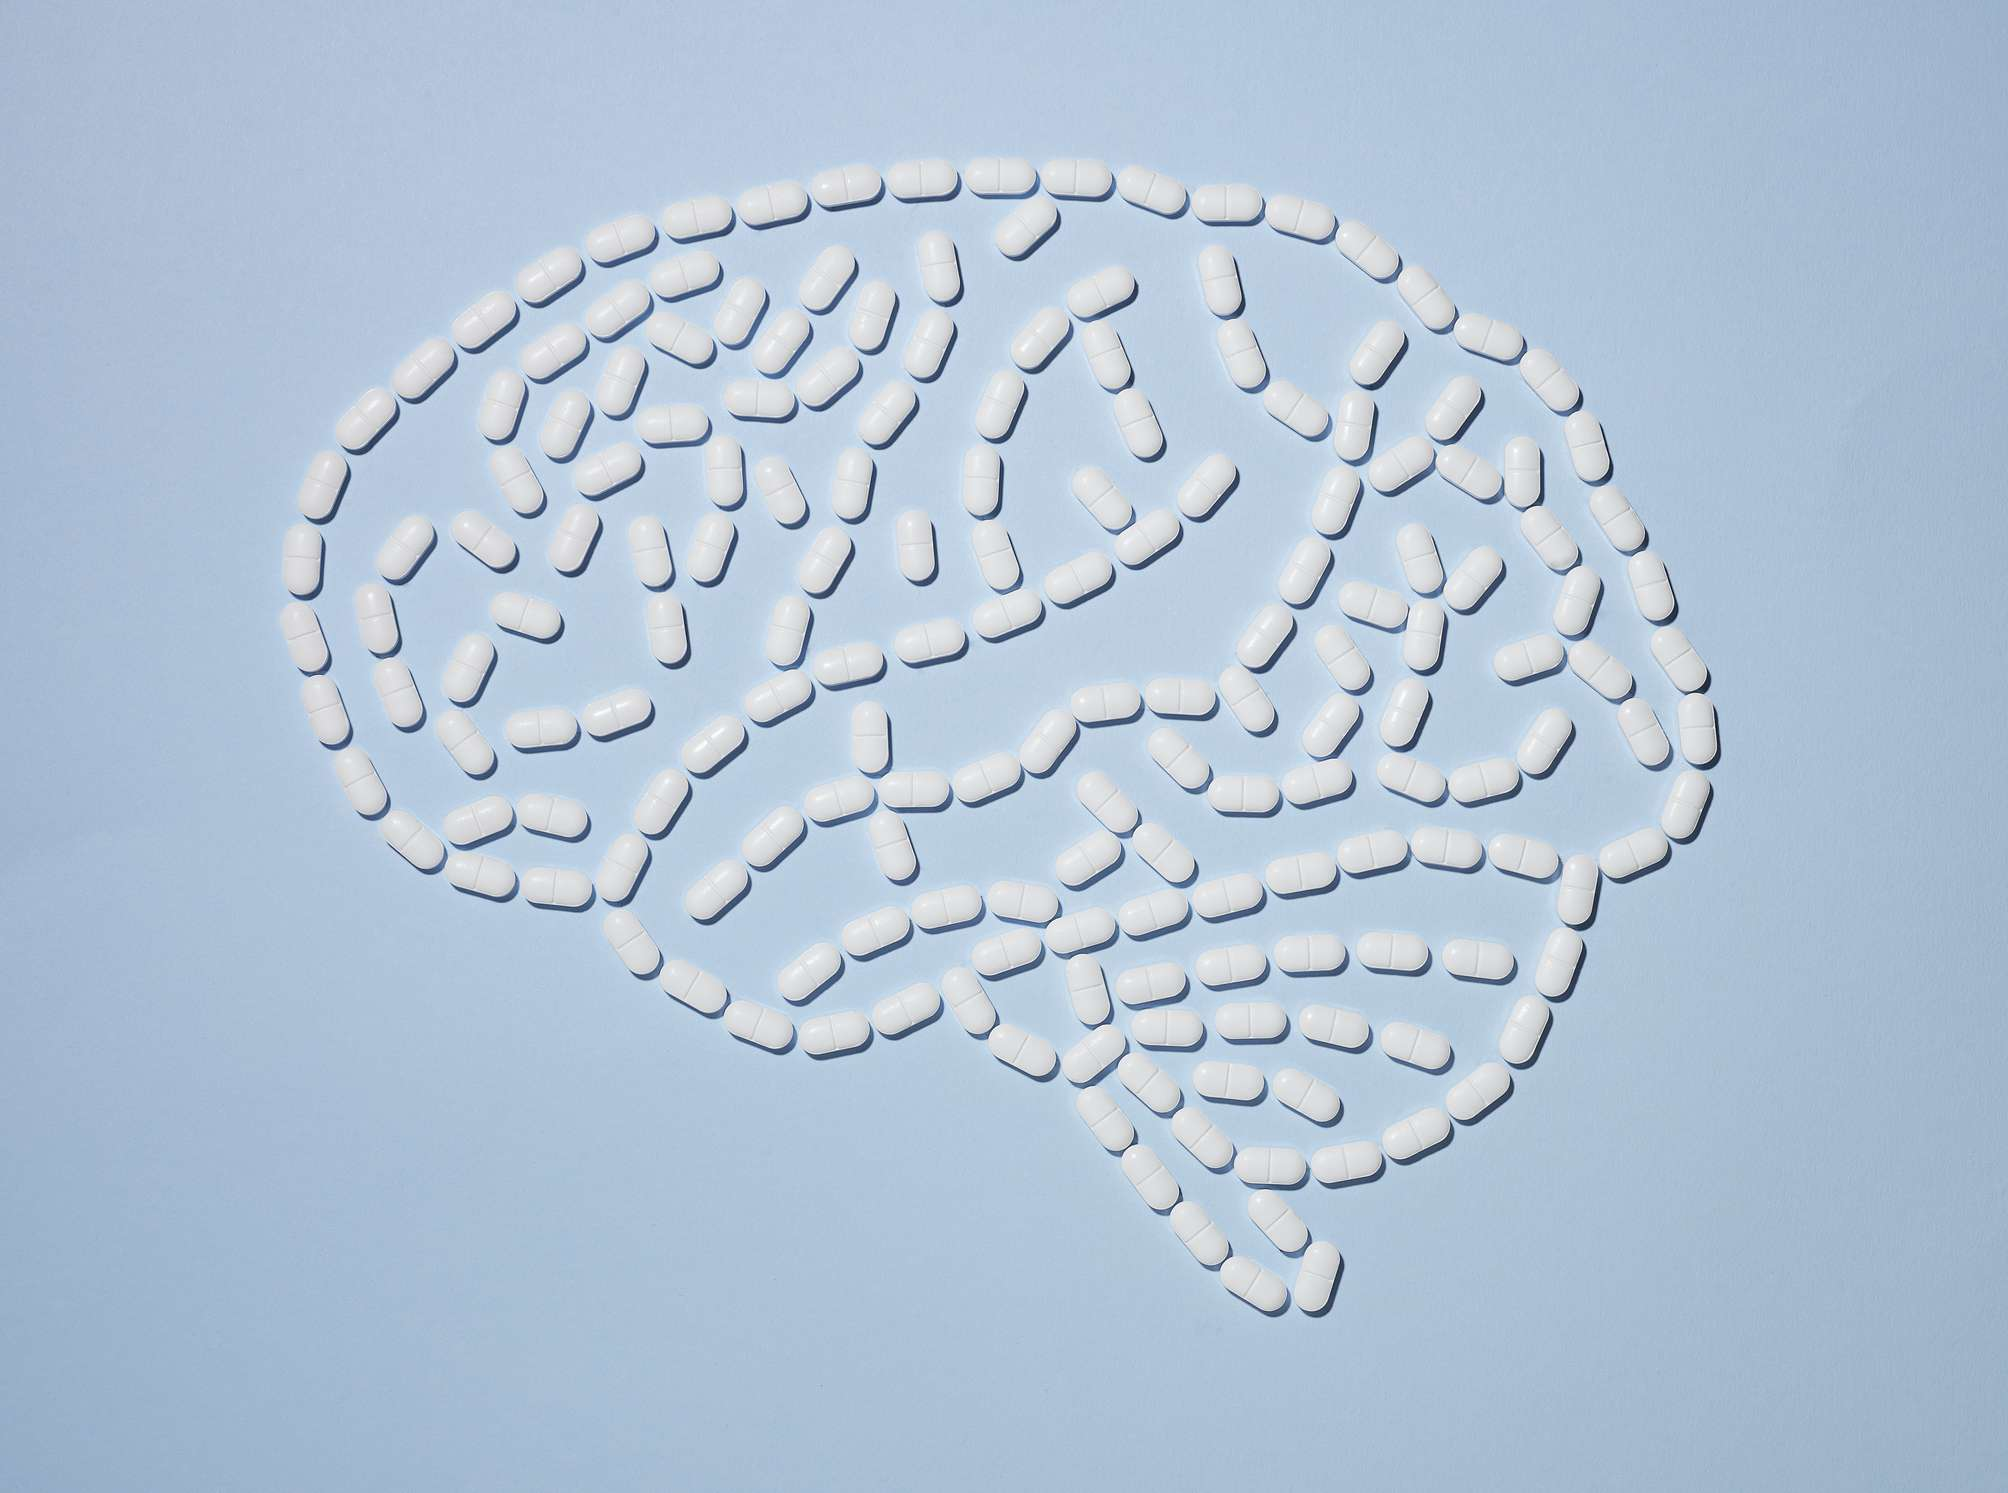 White pills laid out in the shape of a brain